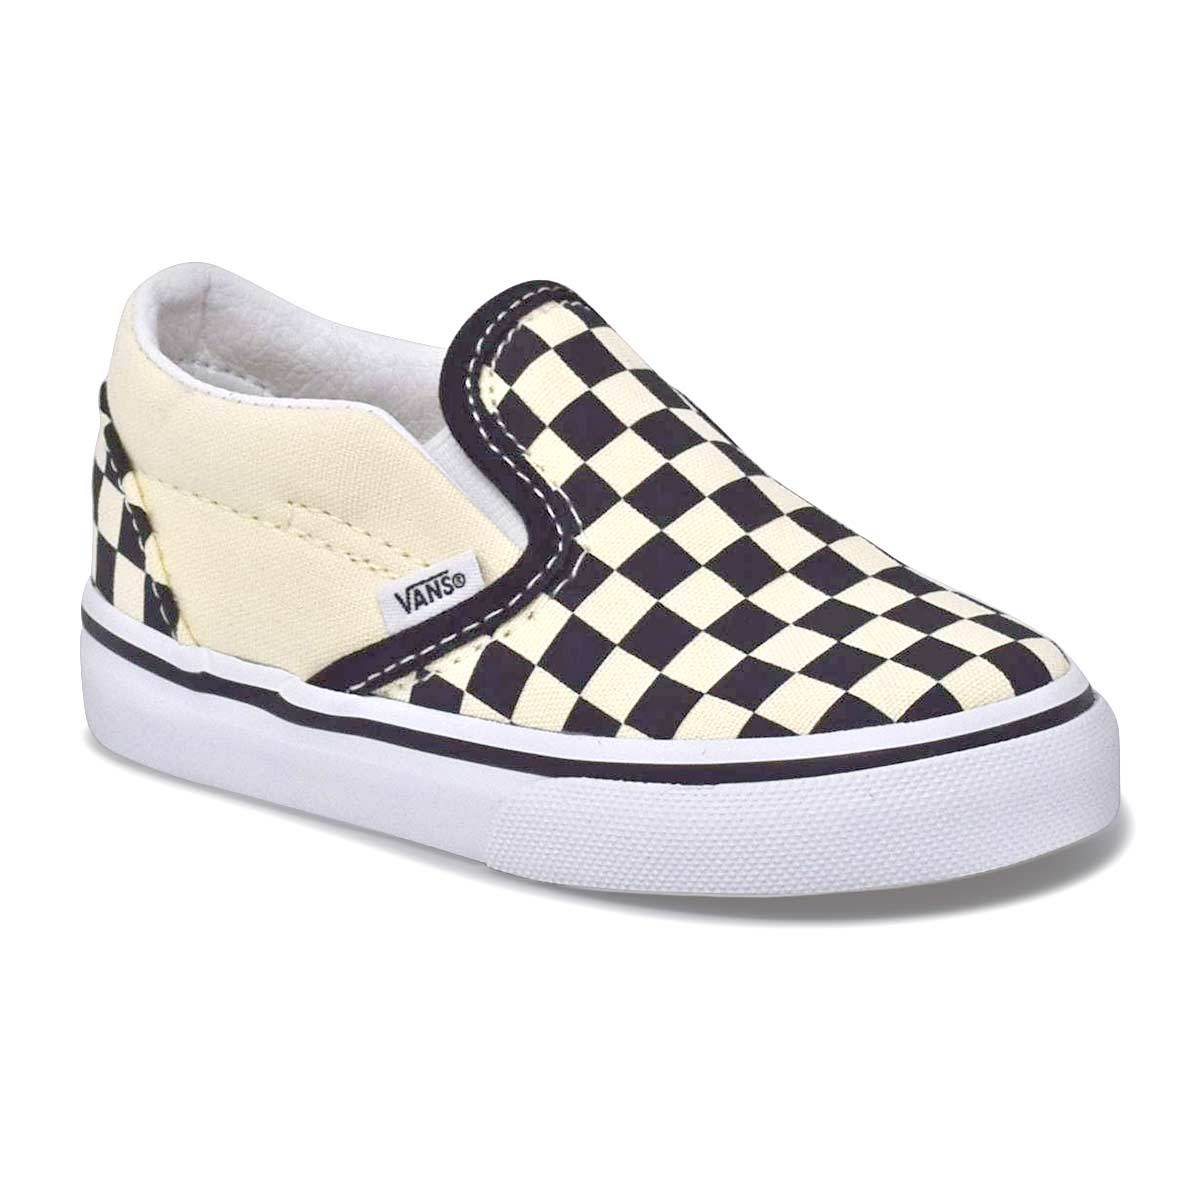 Toddler Classic Slip On Black/White Checkerboard